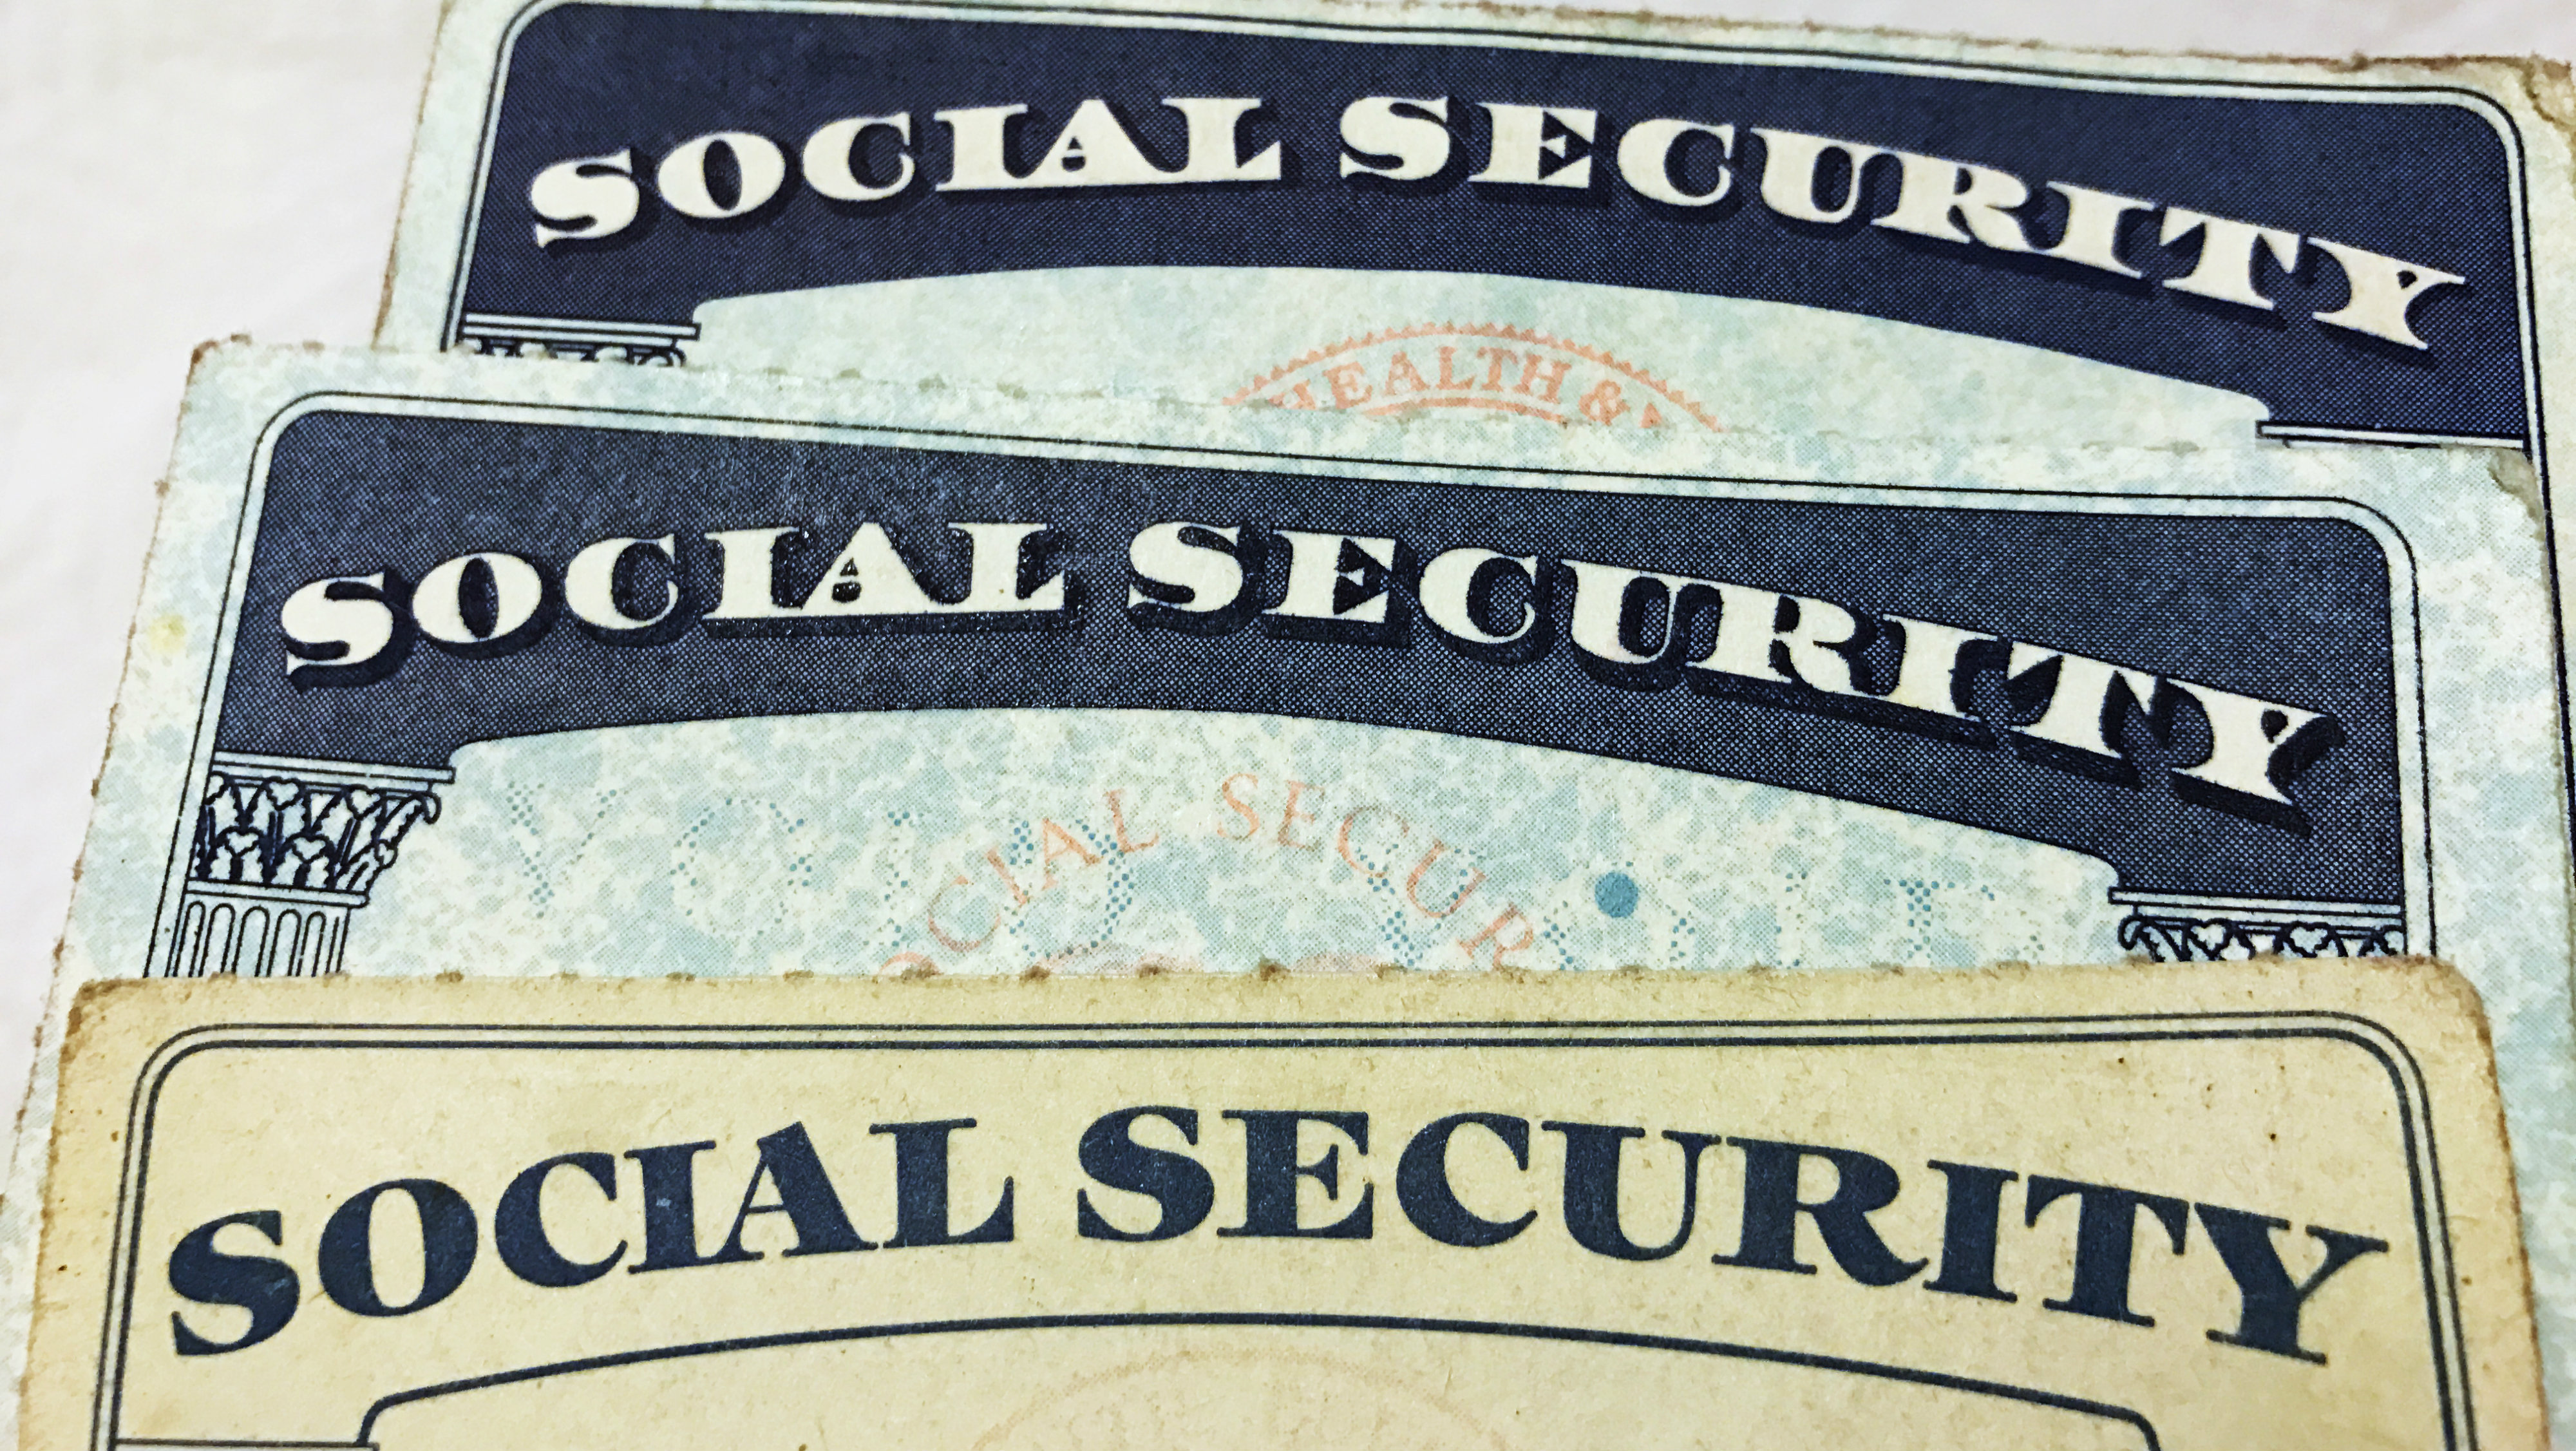 Social Security cards over the years.